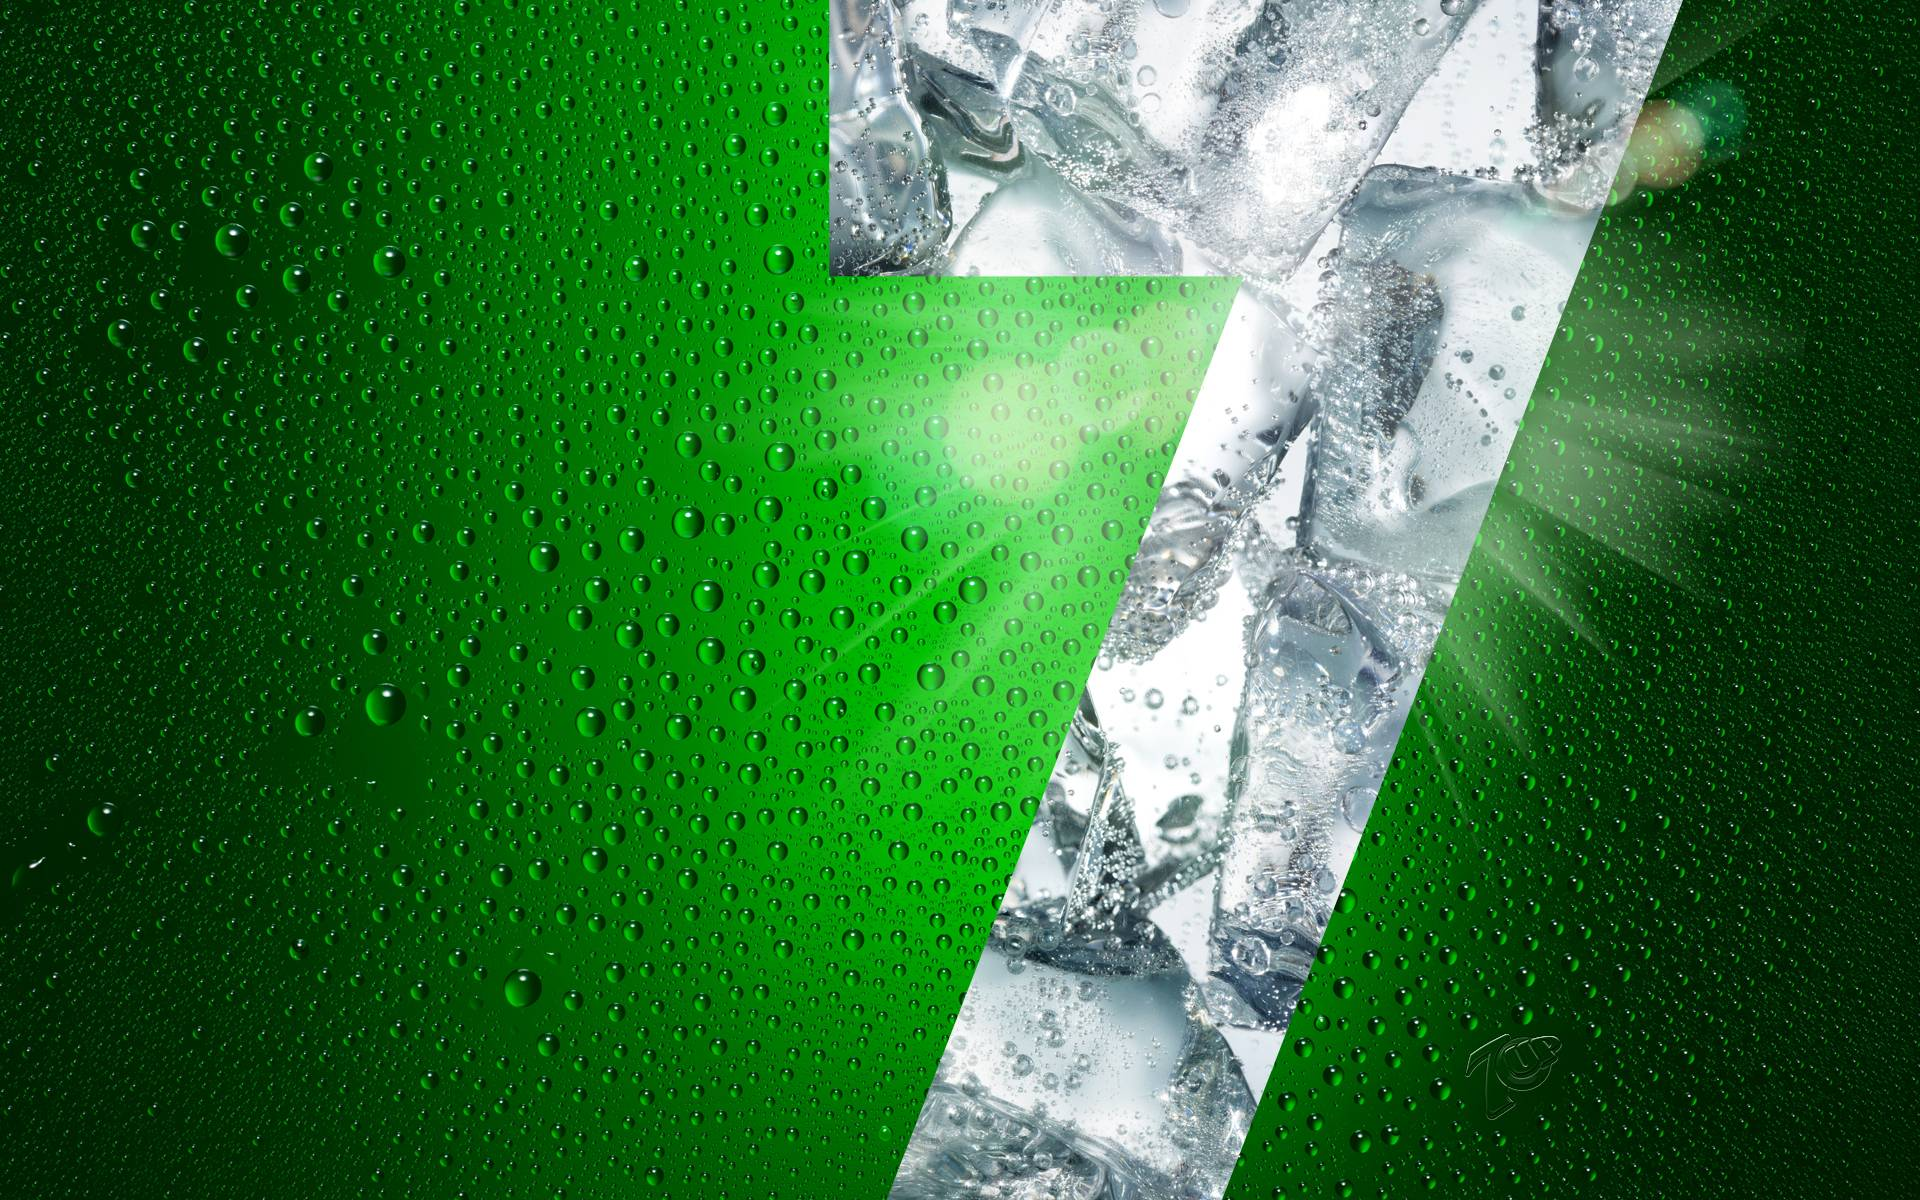 Hd Wallpapers For Mobile: 7up 2016 HD Mobile Wallpapers